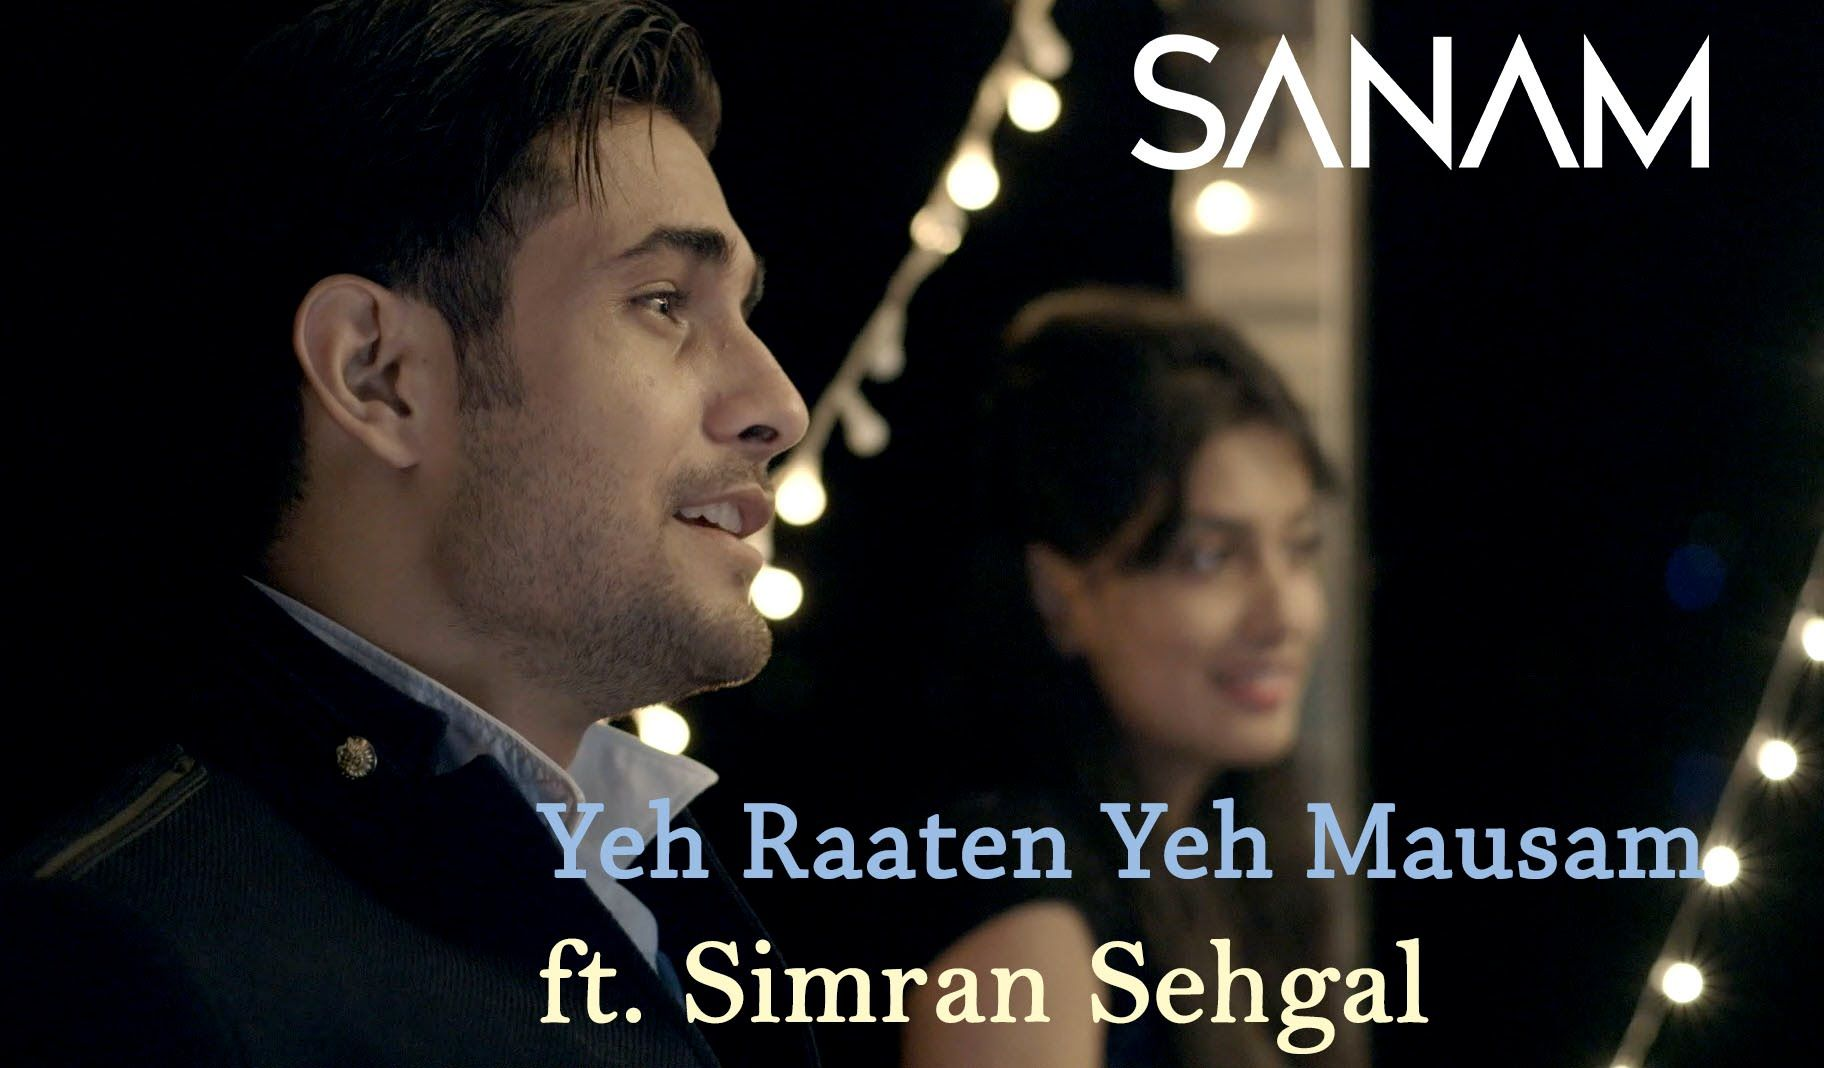 Yeh Raaten Yeh Mausam Mp3 Song Download